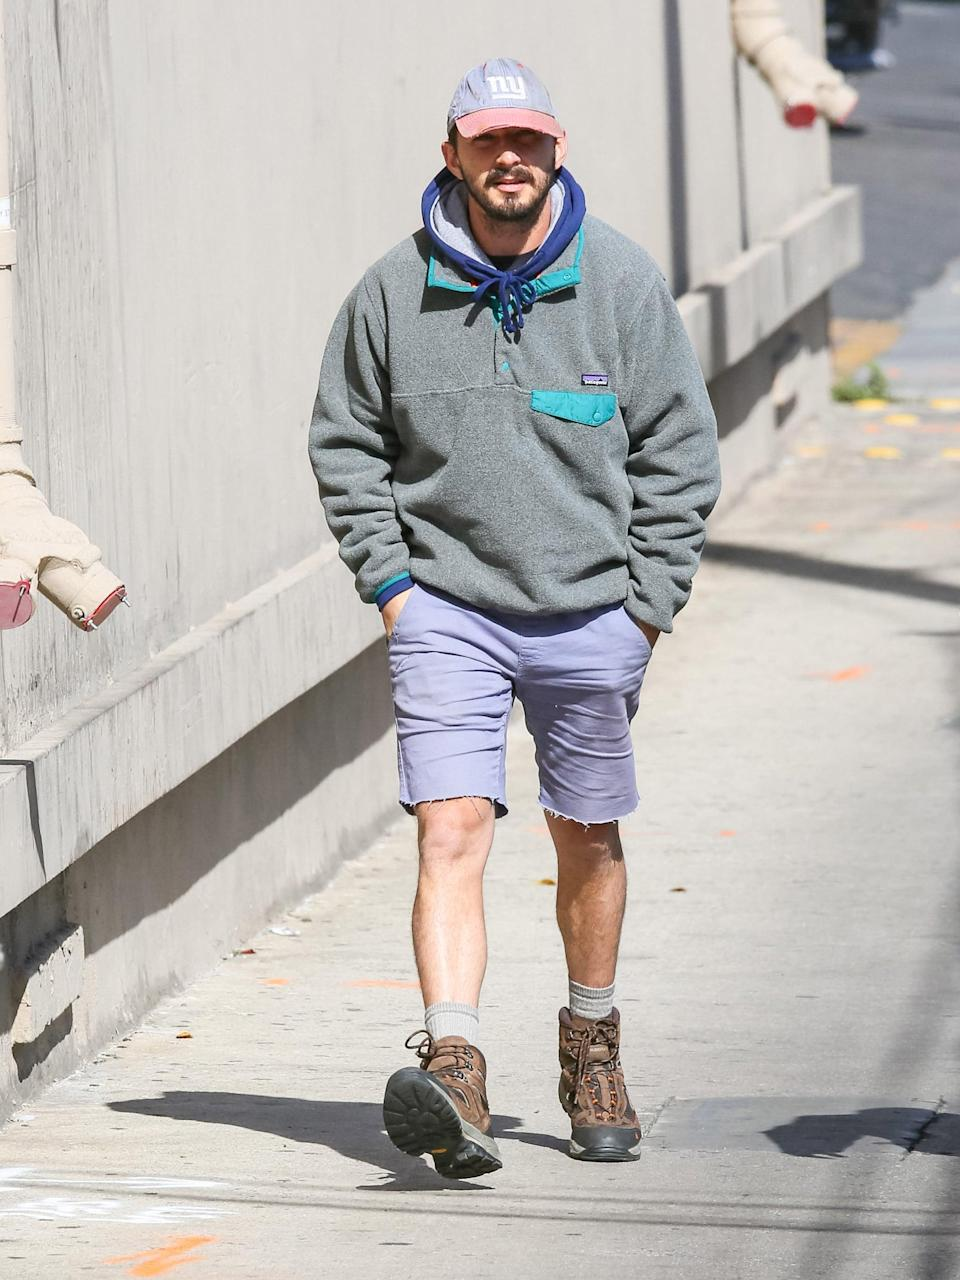 <p>Yes, you can totally get away with wearing lavender shorts when styled with a New York Yankees hat and Patagonia fleece.</p>